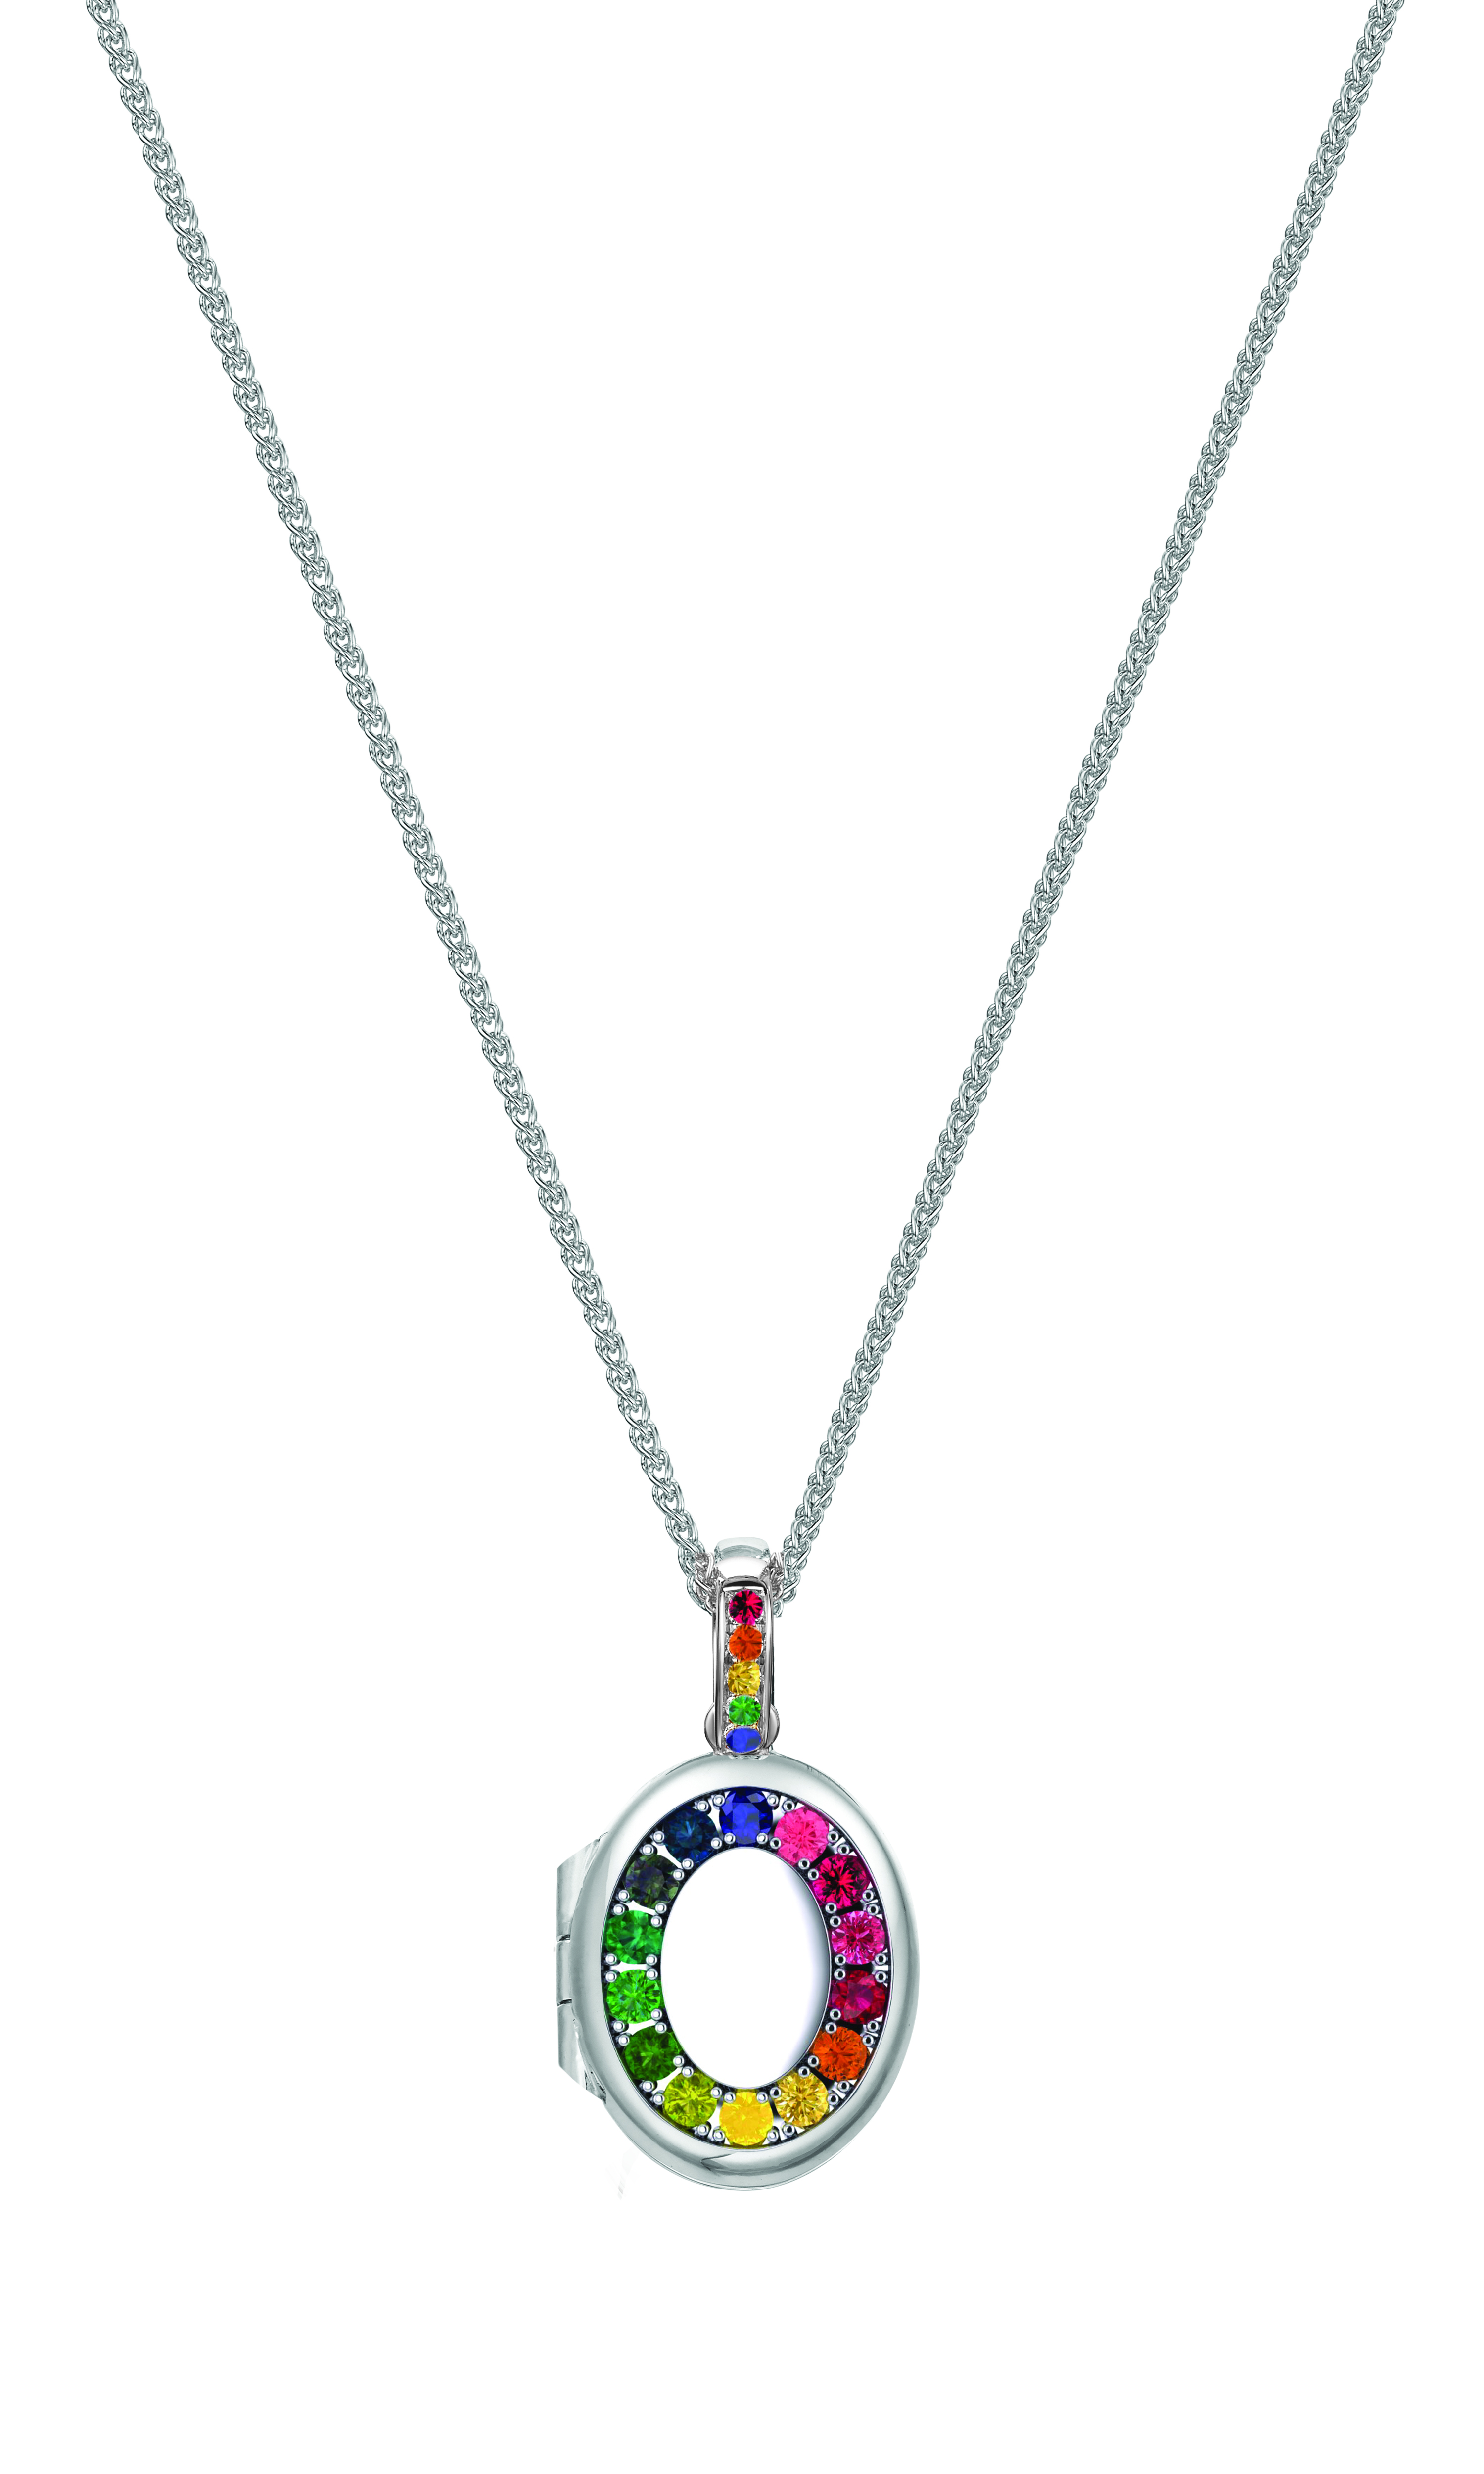 Best of British: Kay Bradley in collaboration with Charles Green & Son, Birmingham have created this unique British design to celebrate the lifting of lockdown with this Rainbow sapphire keep-sake, memory locket. British-made & bespoke-made, multi-gemstone, Rainbow sapphire oval locket with Rainbow sapphire bail in solid 9ct white gold. Approx. carat content: 0.30cts All coming soon and available to pre-order within 8 weeks. Chains are sold separately.